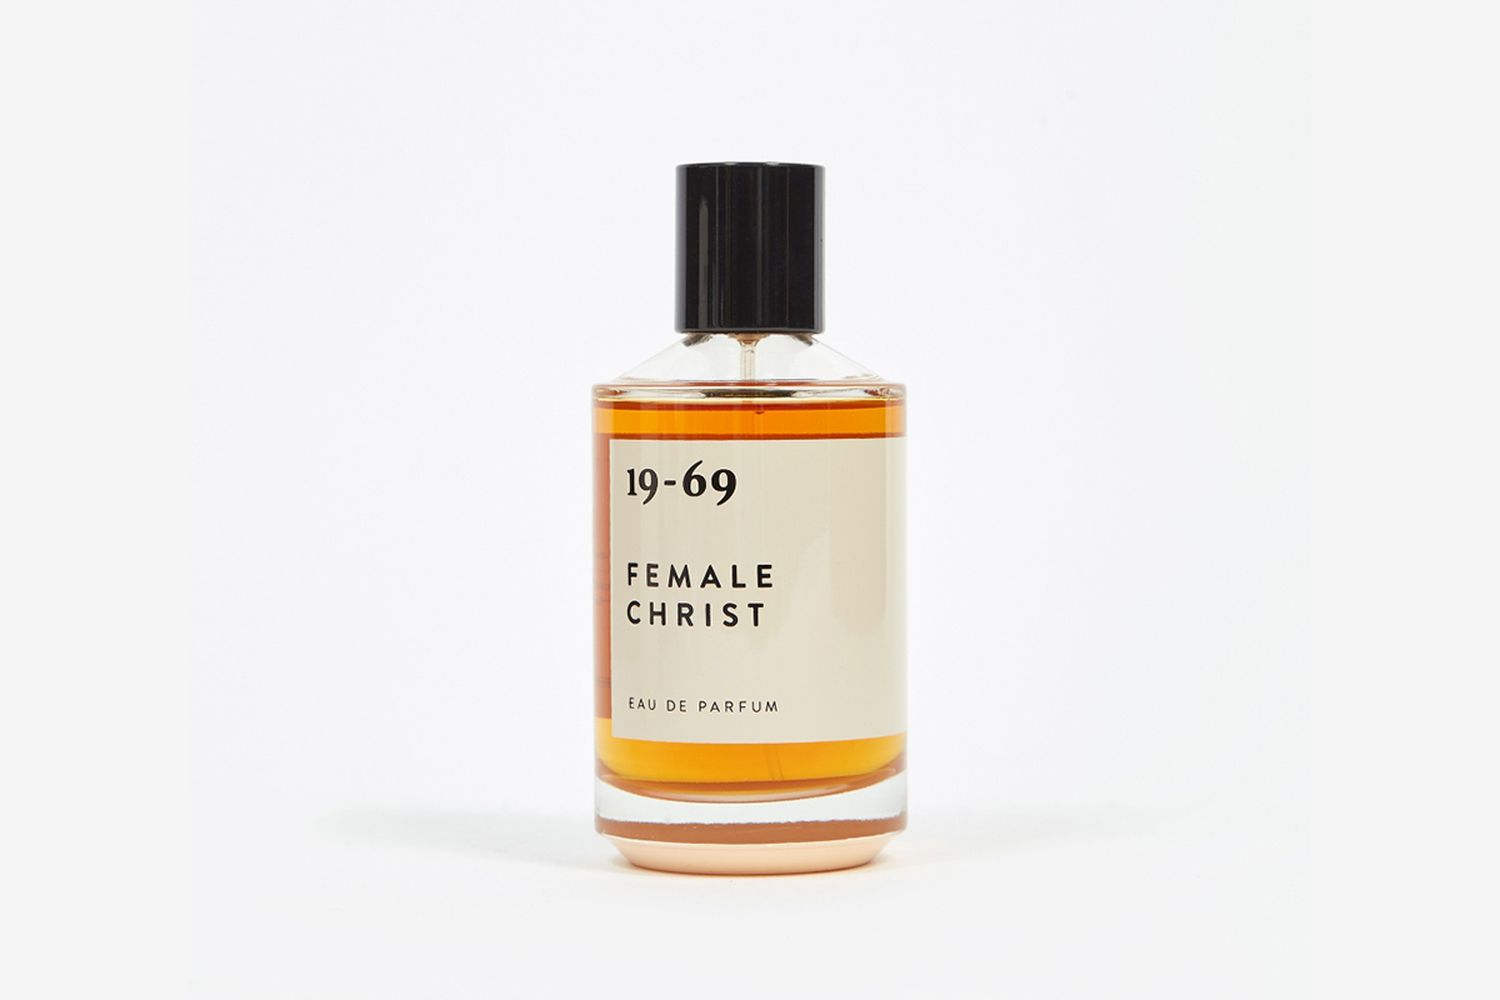 Female Christ Eau de Parfum